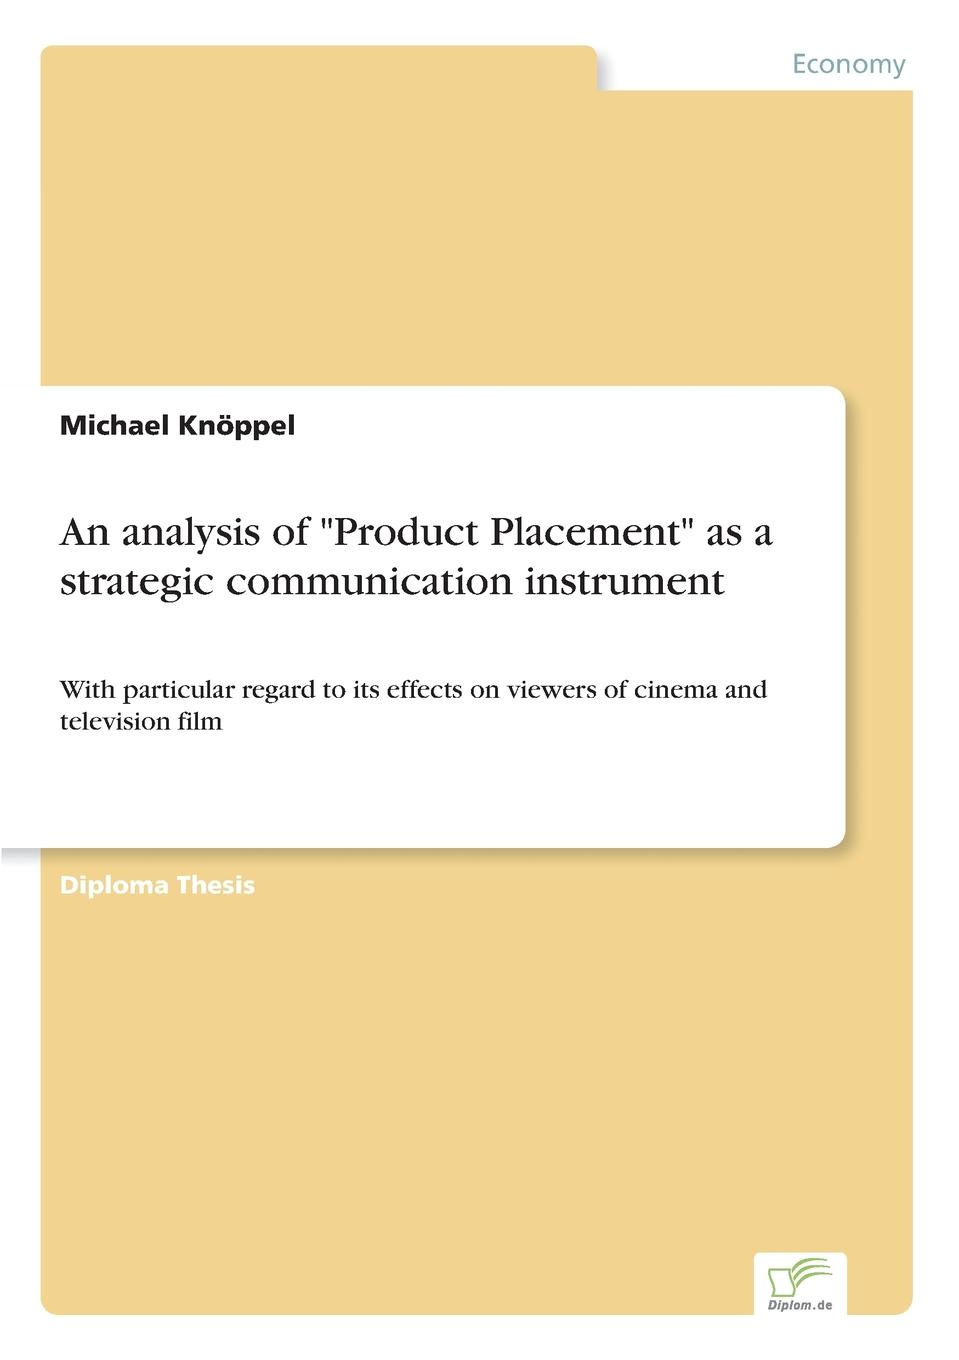 Michael Knöppel An analysis of Product Placement as a strategic communication instrument tina r erfolgsfaktoren des product placements in kinospielfilmen